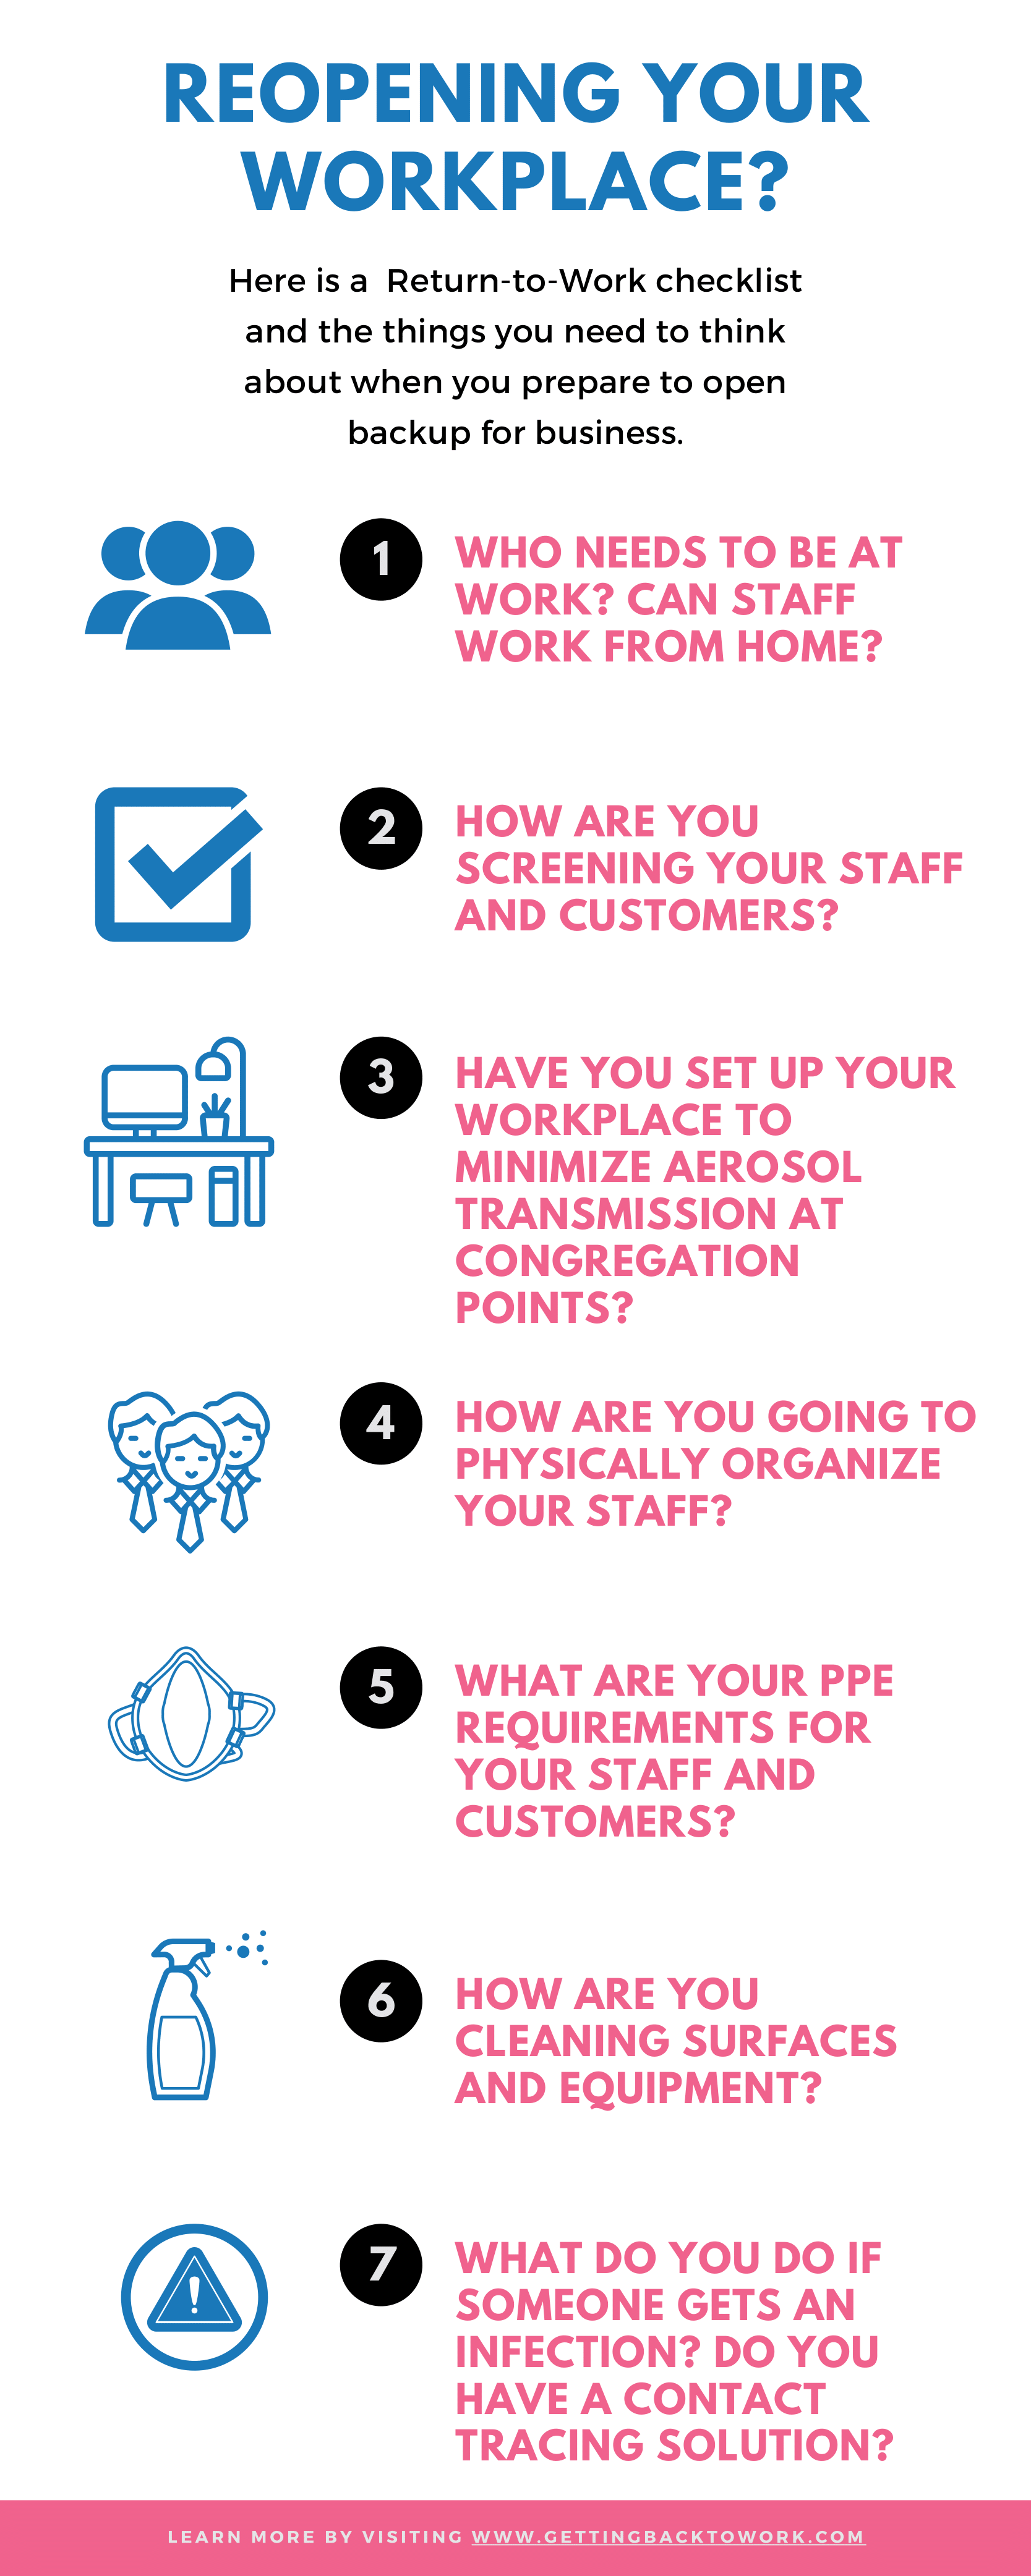 As employees and customers begin enjoying the reopening of businesses, business owners need to take precautions and necessary steps to ensure workplace safety. We have put together a checklist of best practices for businesses to consult to ensure optimal health safety of their employees and customers.